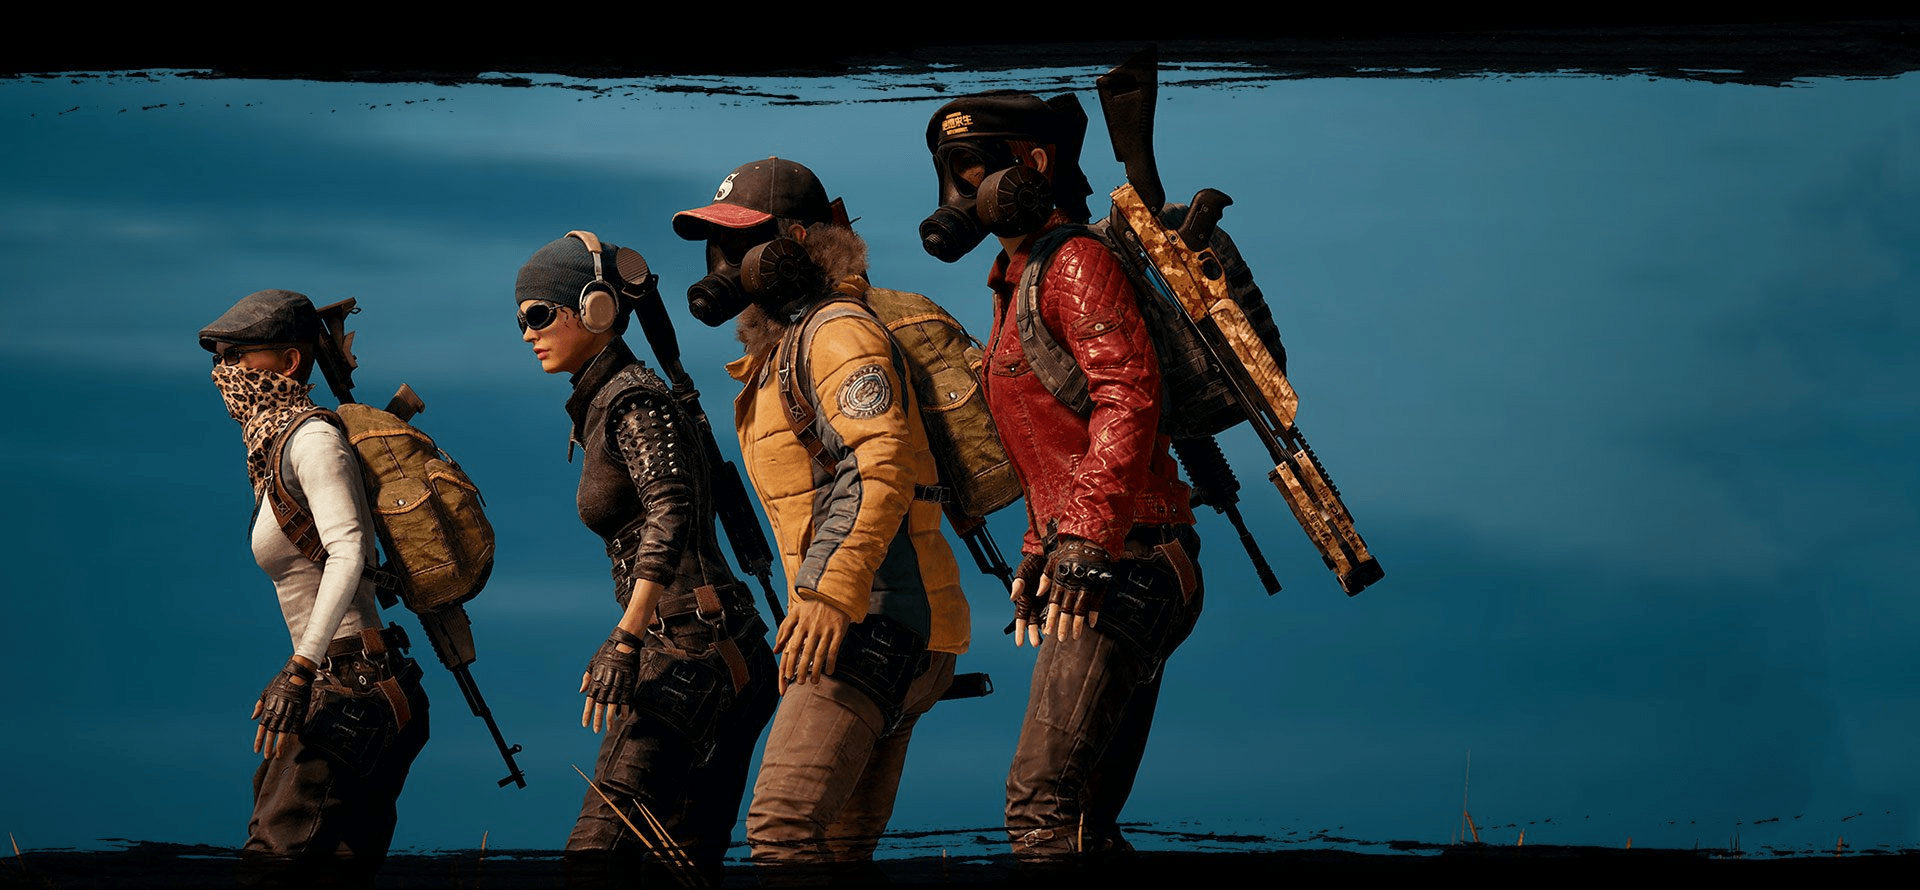 Pubg Hdr Wallpaper: Microsoft PlayerUnknown's Battlegrounds 1.0 (XBOX ONE